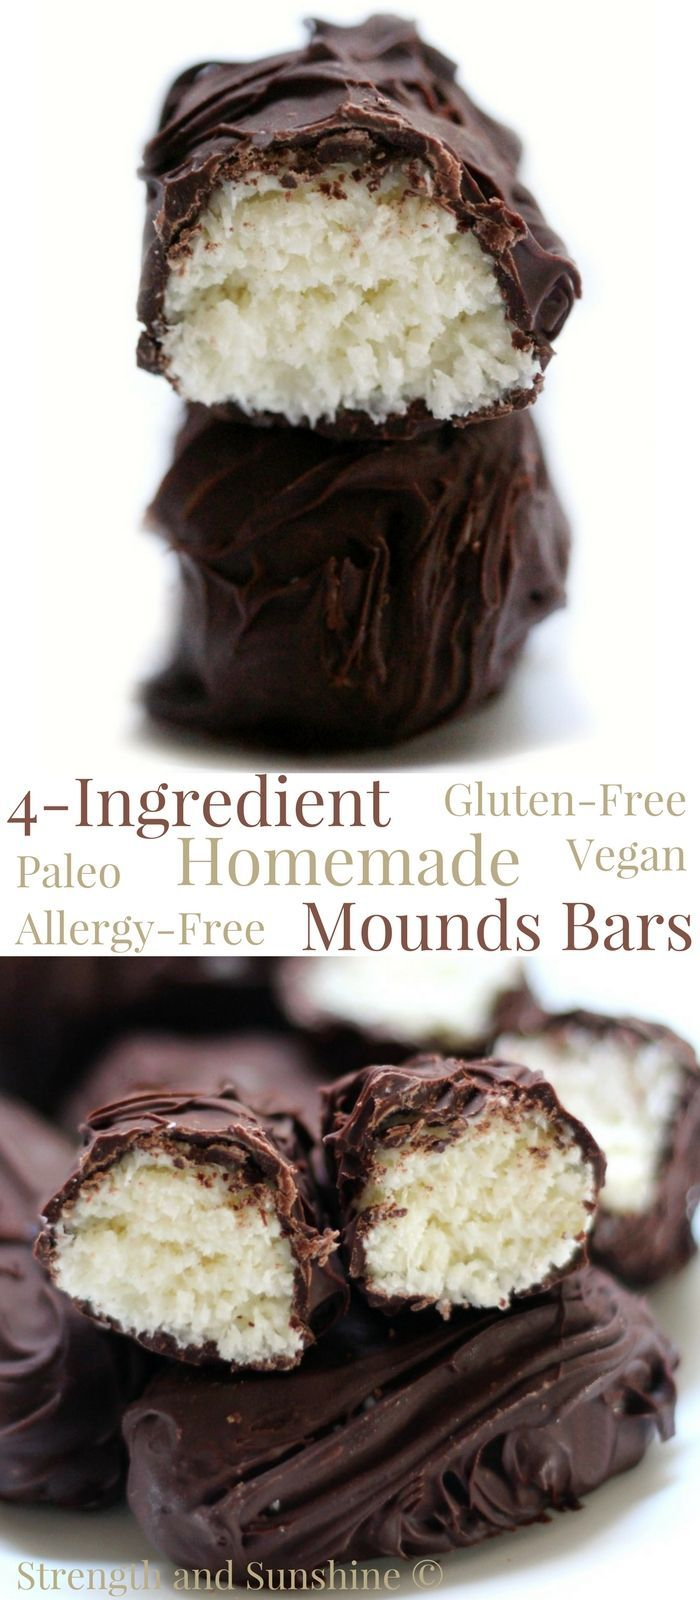 4-Ingredient Homemade Mounds Bars (Gluten-Free, Vegan, Paleo) | Strength and Sunshine @RebeccaGF666 A homemade candy bar recipe that couldn't be easier! 4-Ingredient Homemade Mounds Bars! This copycat coconut and chocolate treat is gluten-free, vegan, paleo, top-8 allergy-free, much healthier without the junk, but still delicious! #chocolate #coconut #moundsbars #candy #glutenfree #vegan #paleo #allergyfree